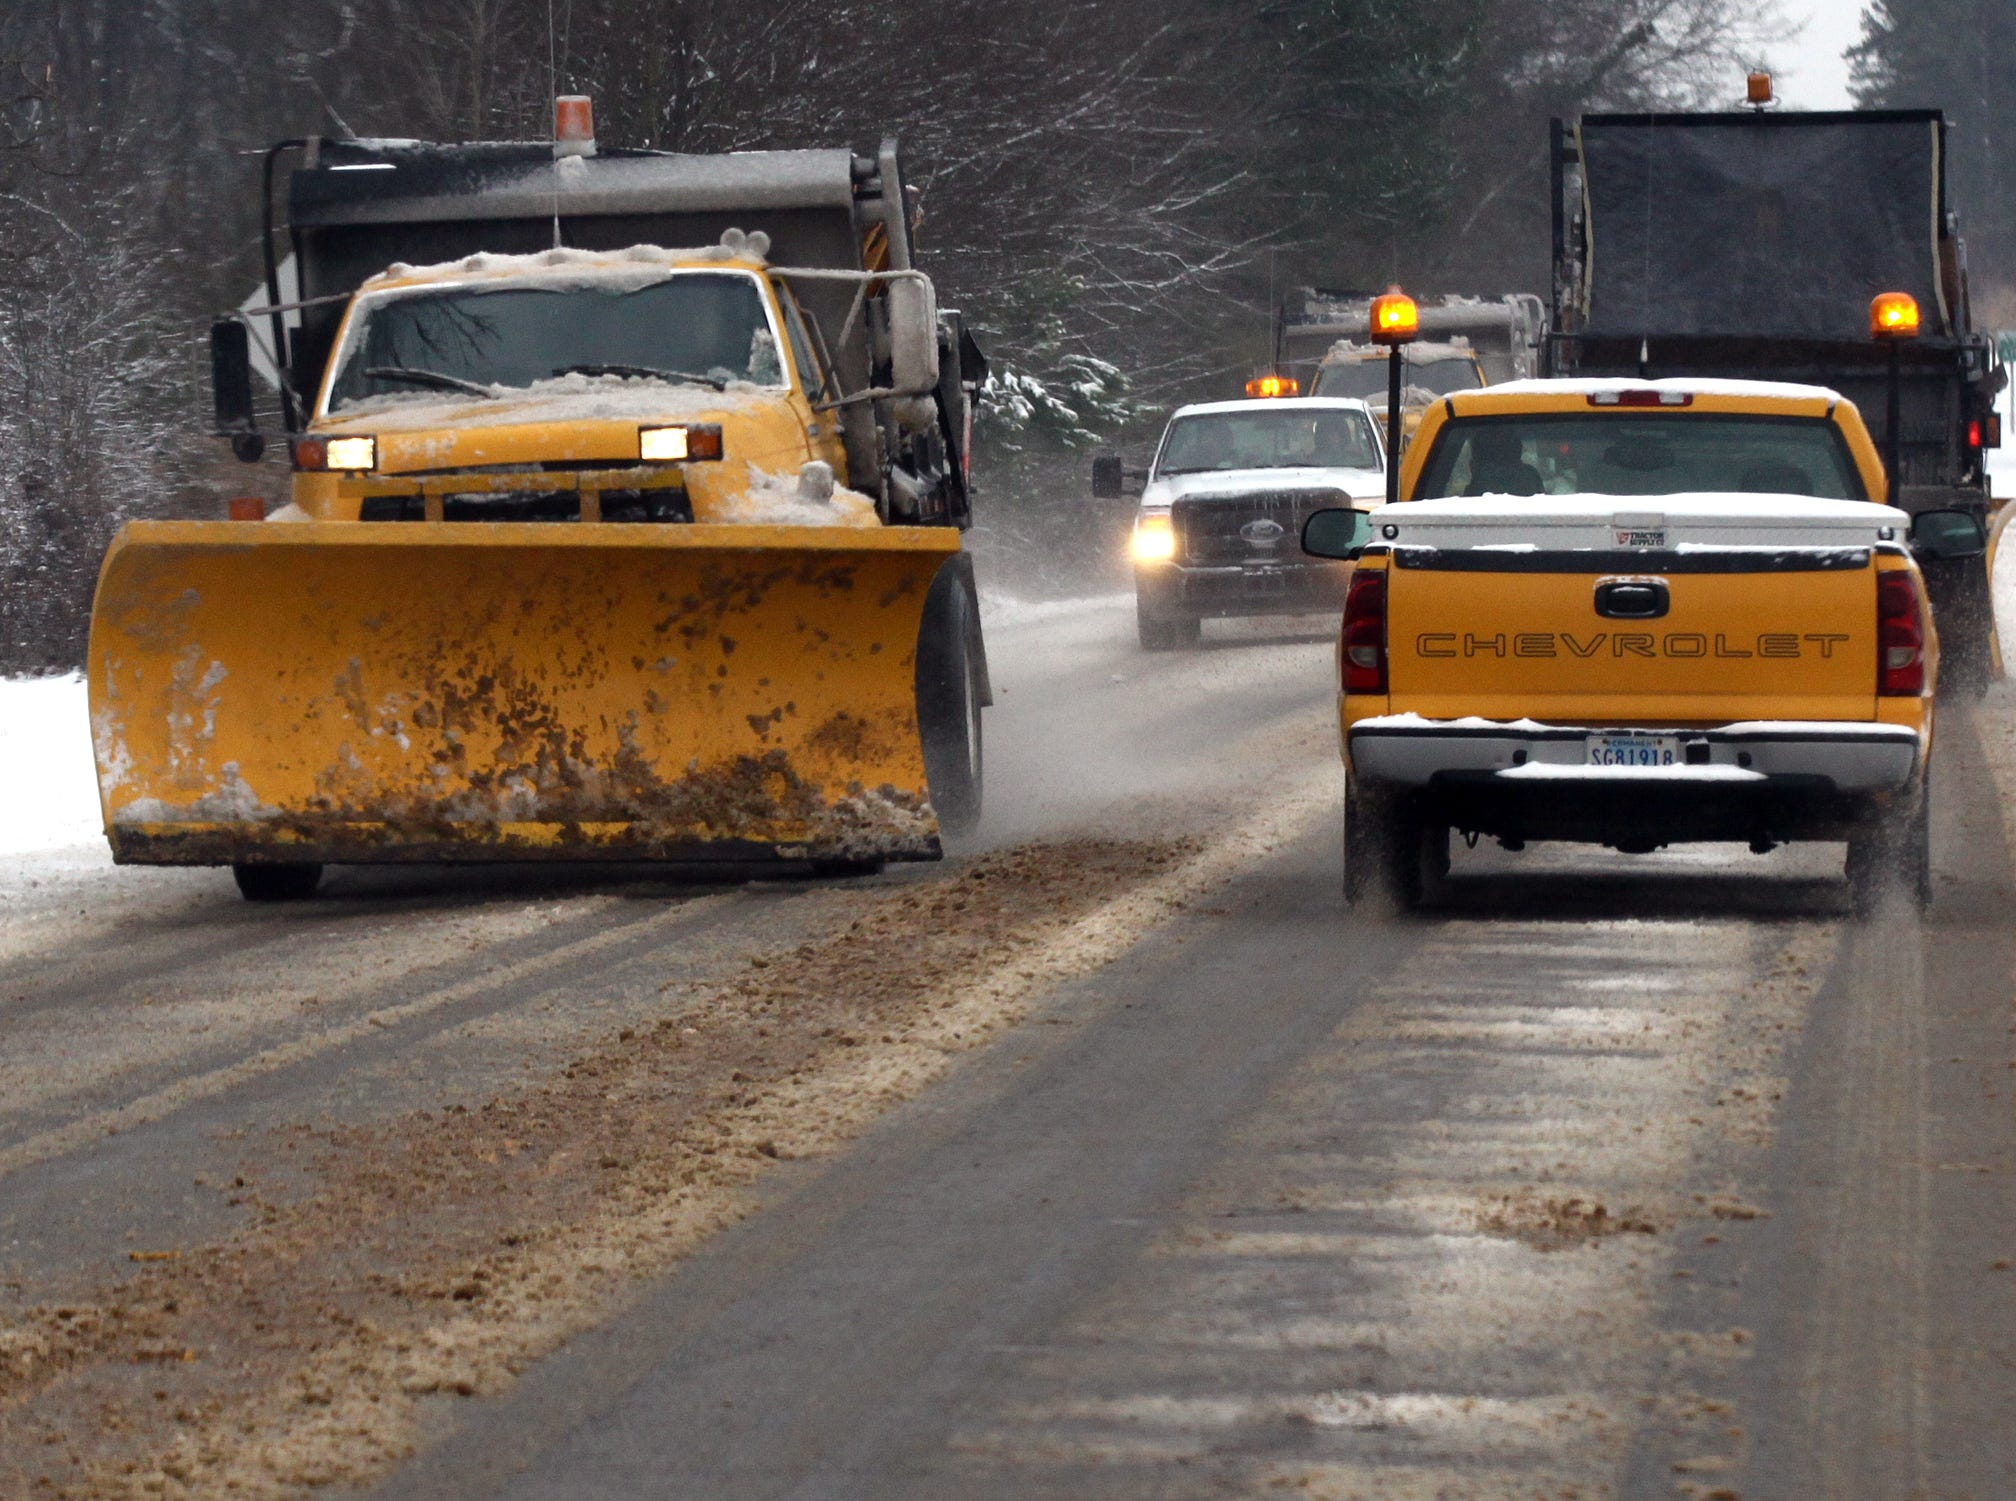 Sand trucks pass each other near the South Carolina Department of Transportation center on S.C. 178 in Anderson during the first snow of 2014.